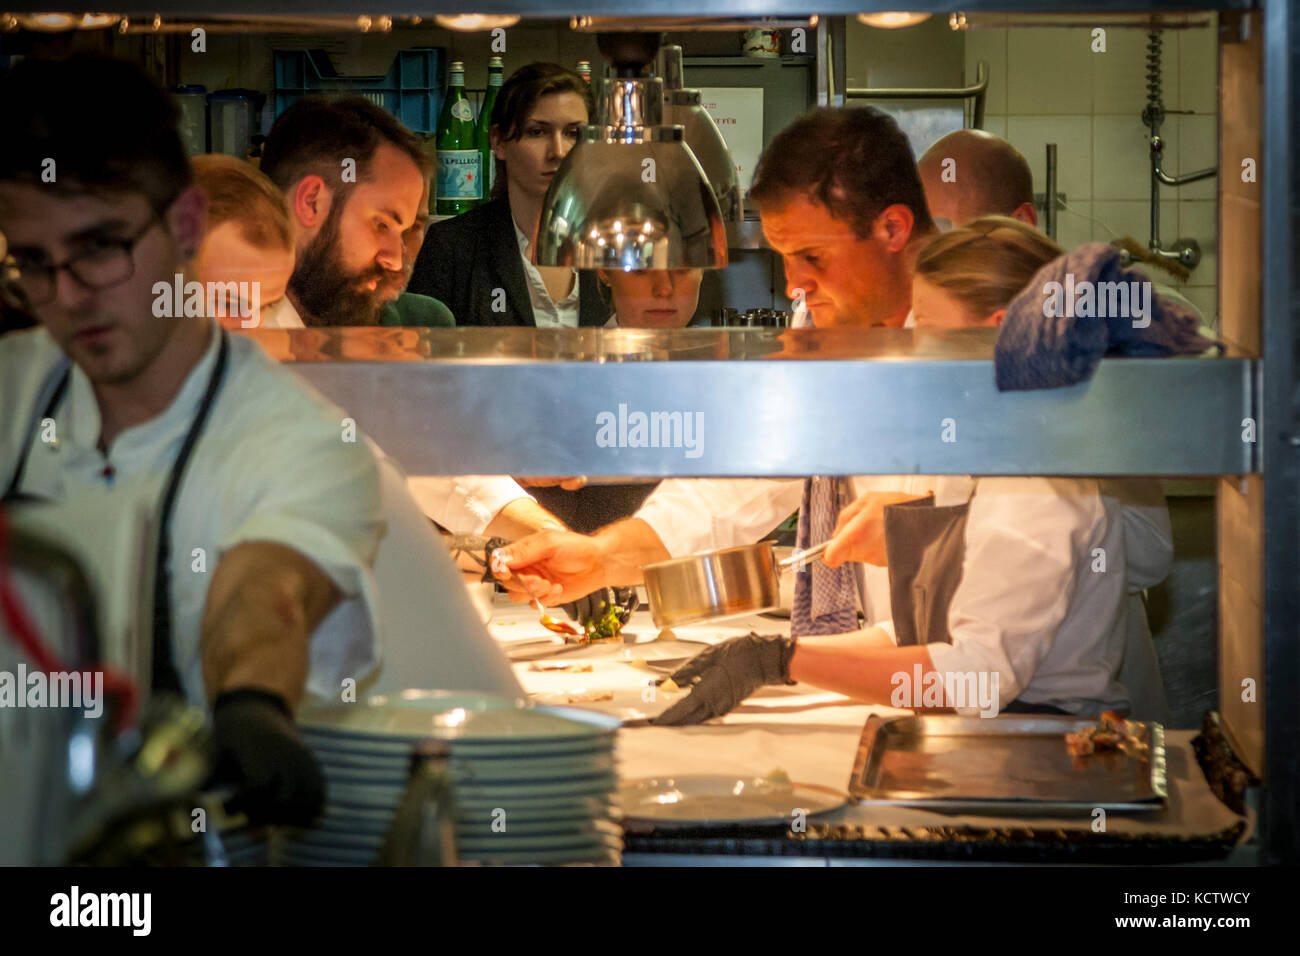 Line Chef Stockfotos & Line Chef Bilder - Alamy